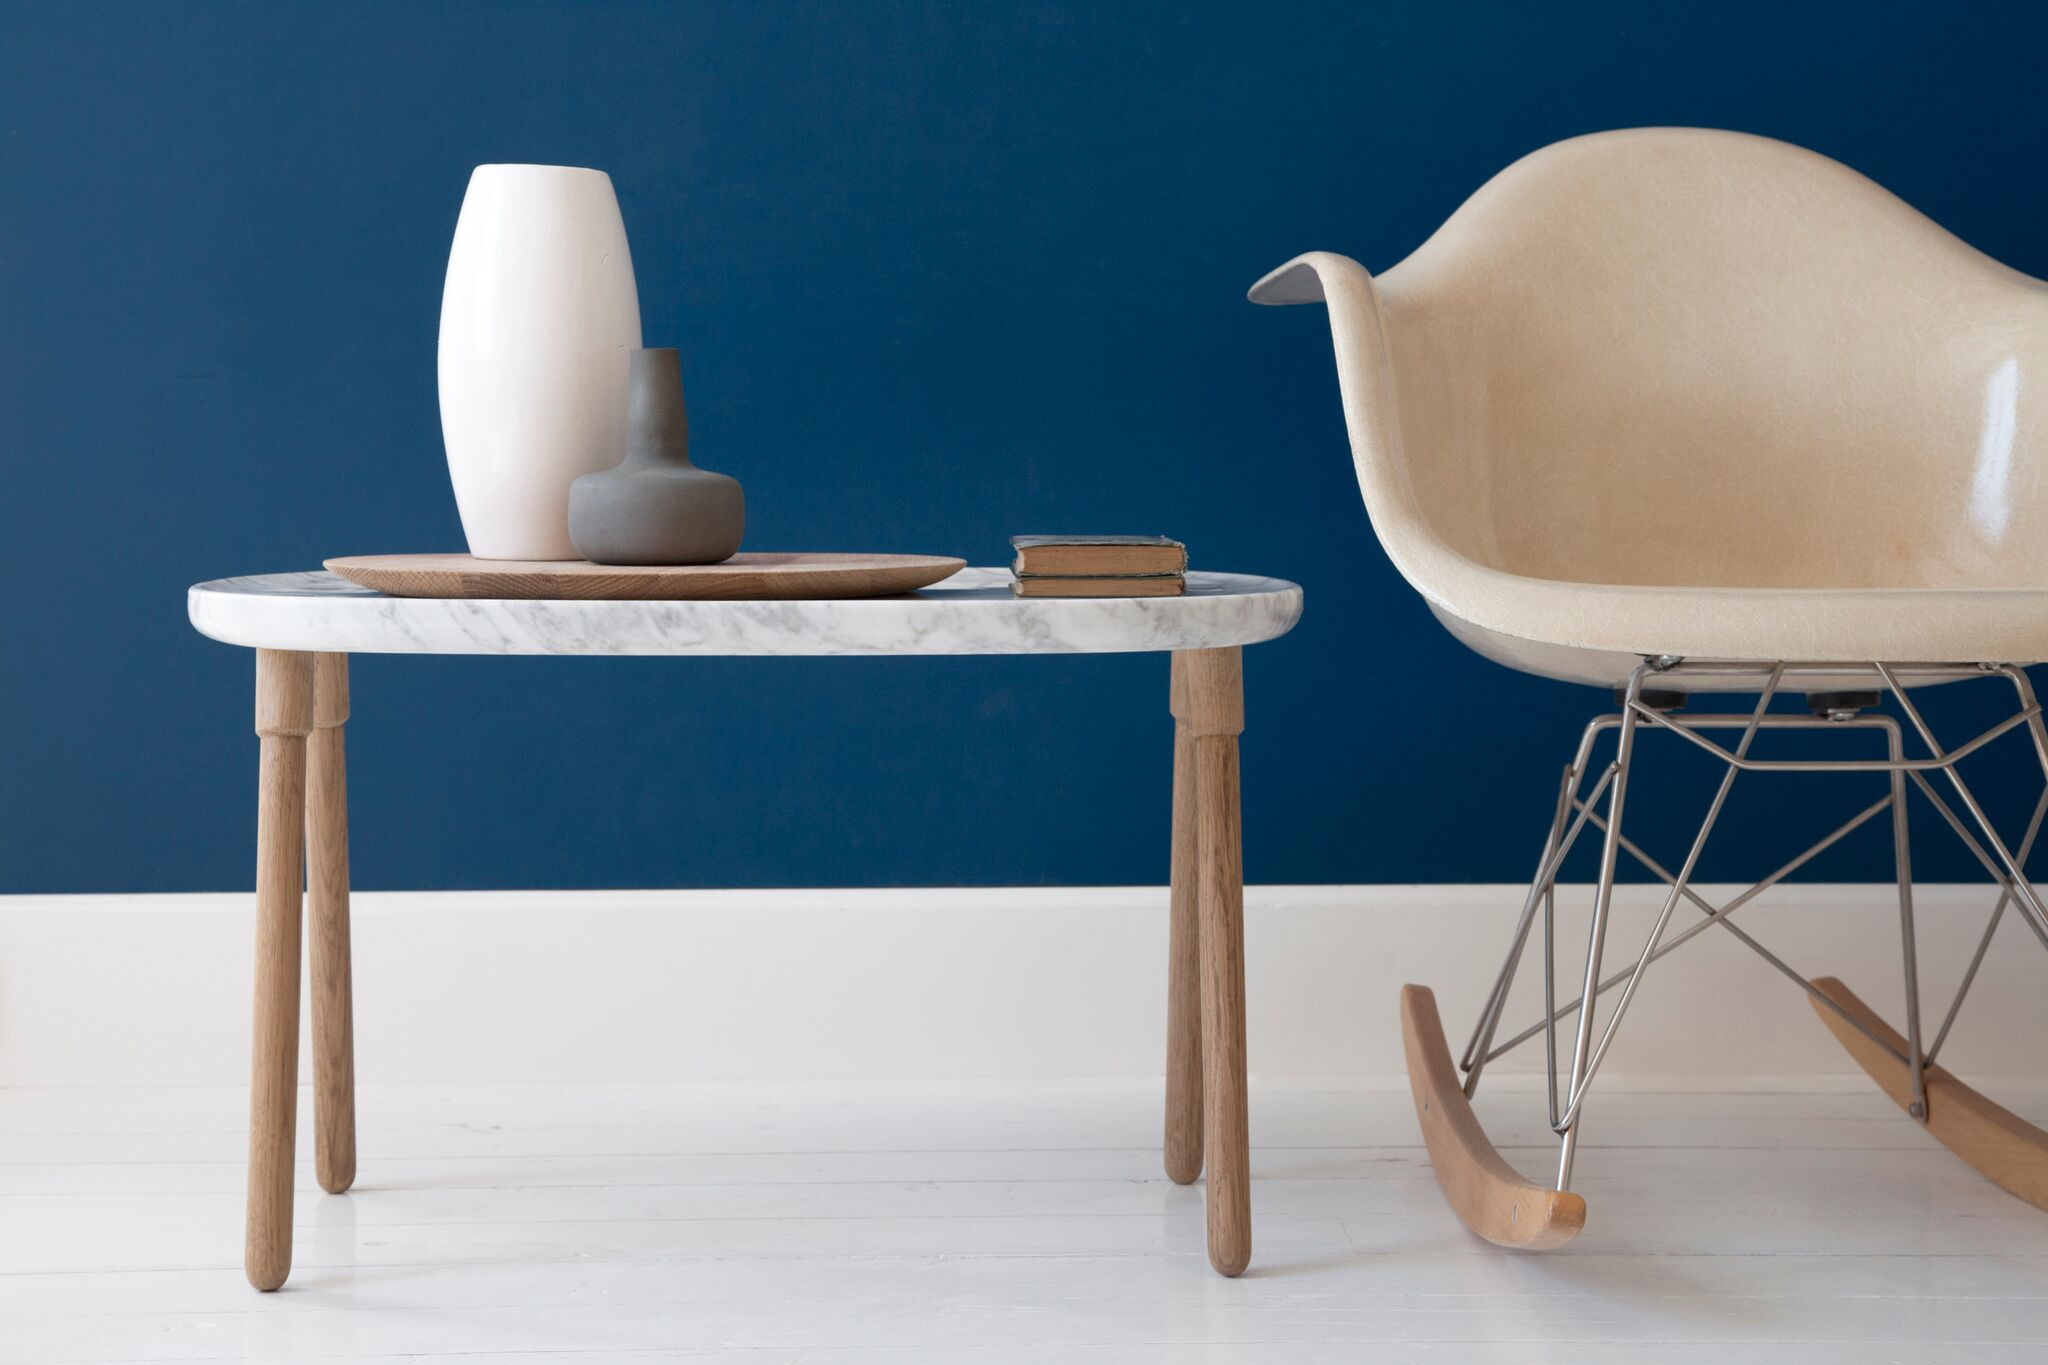 Gallery Of Cloud Table By Mr.fräg Local Australian Furniture And Industrial Design Sydney, Nsw Image 3